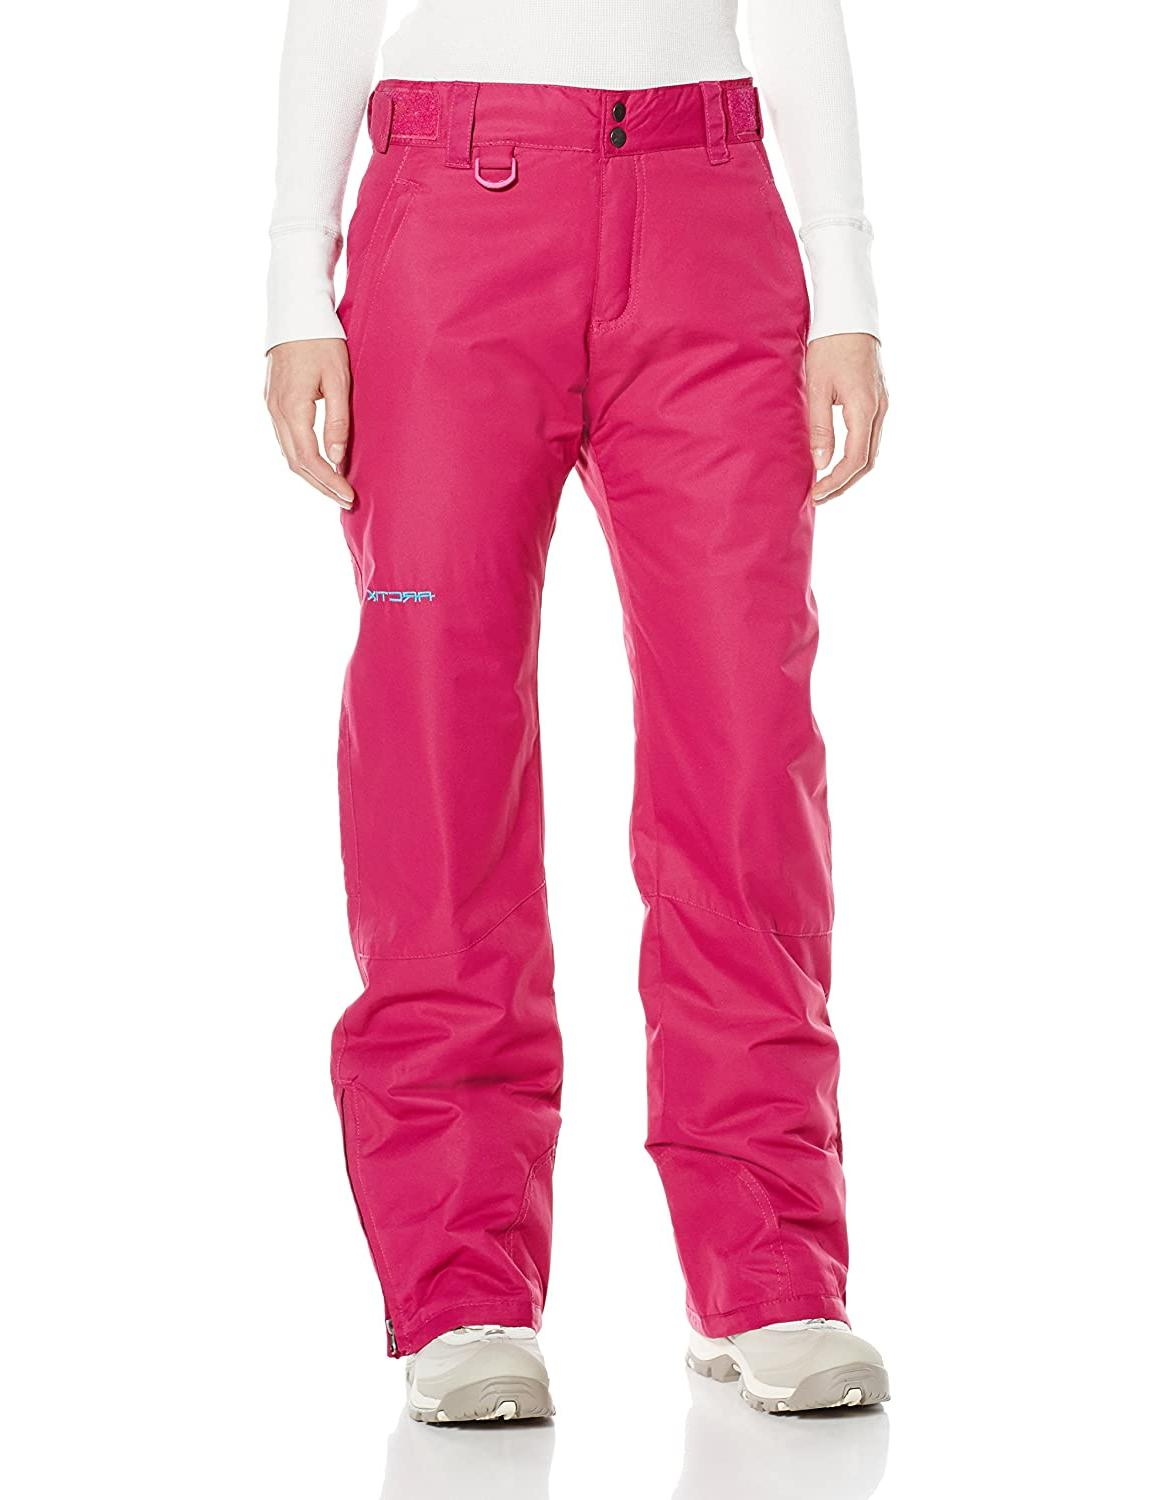 Women's Insulated Snow Pant , X-Small/Regular, Orchid Fuchsi